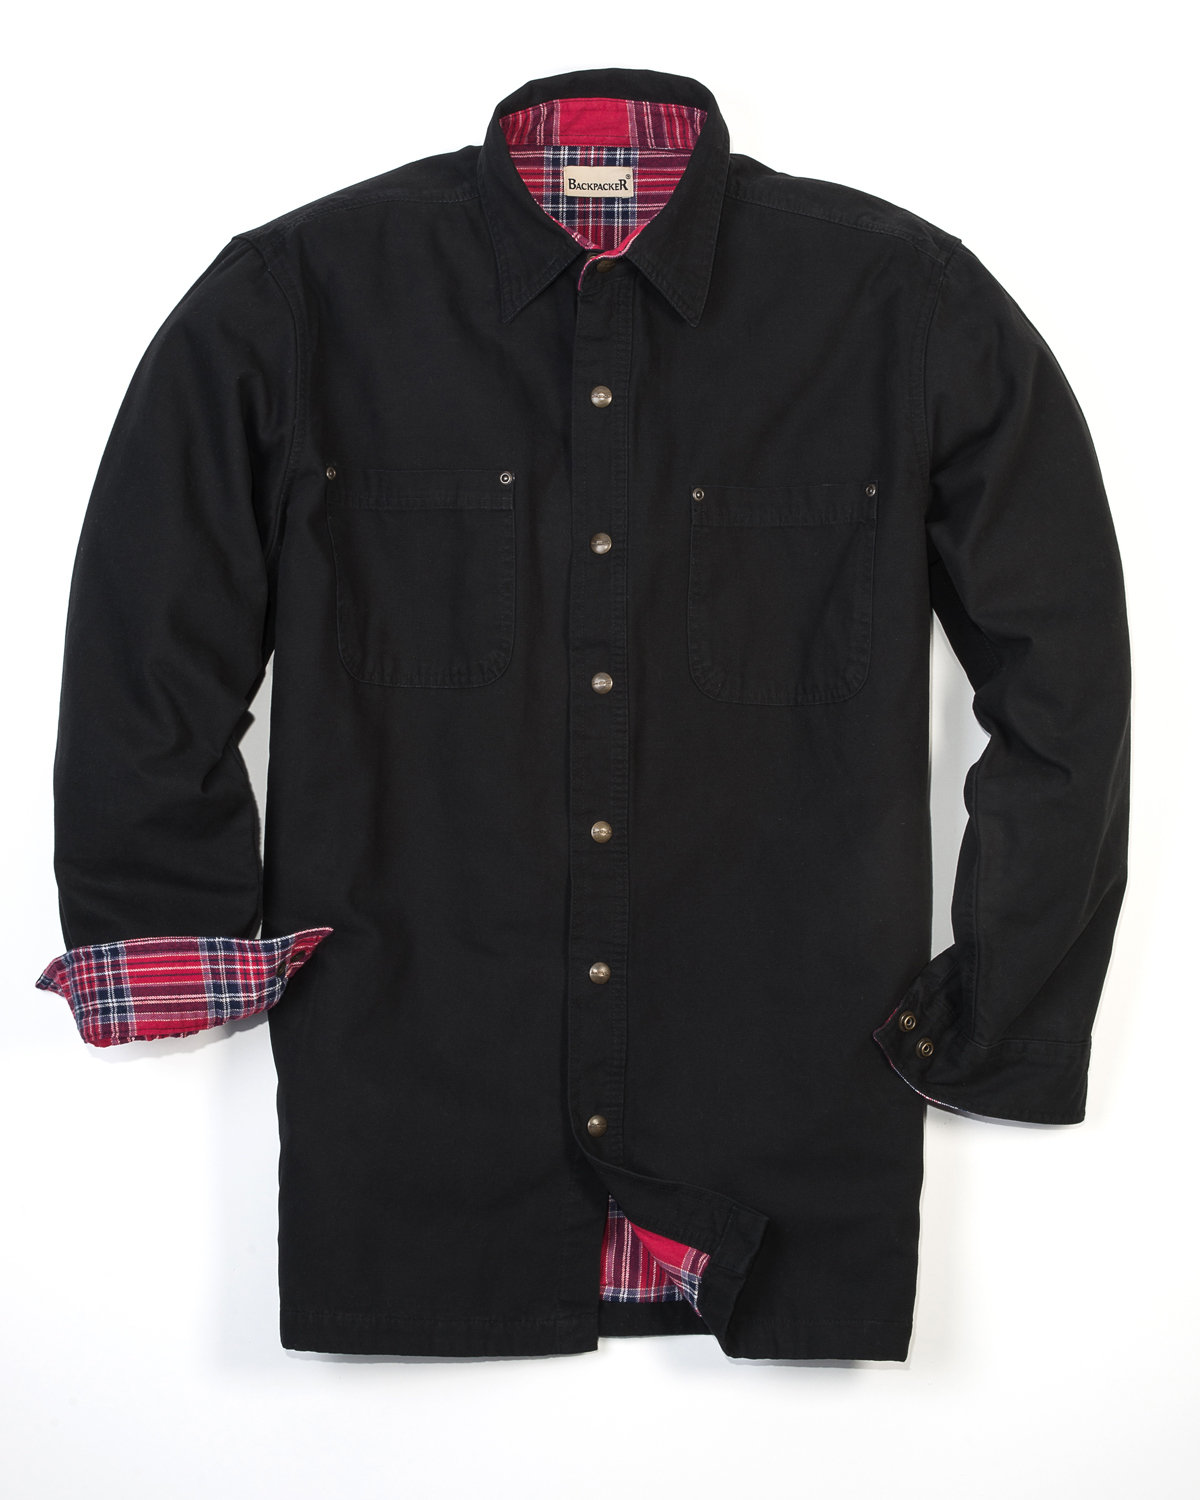 Backpacker Men's Canvas Shirt Jacket with Flannel Lining BLACK